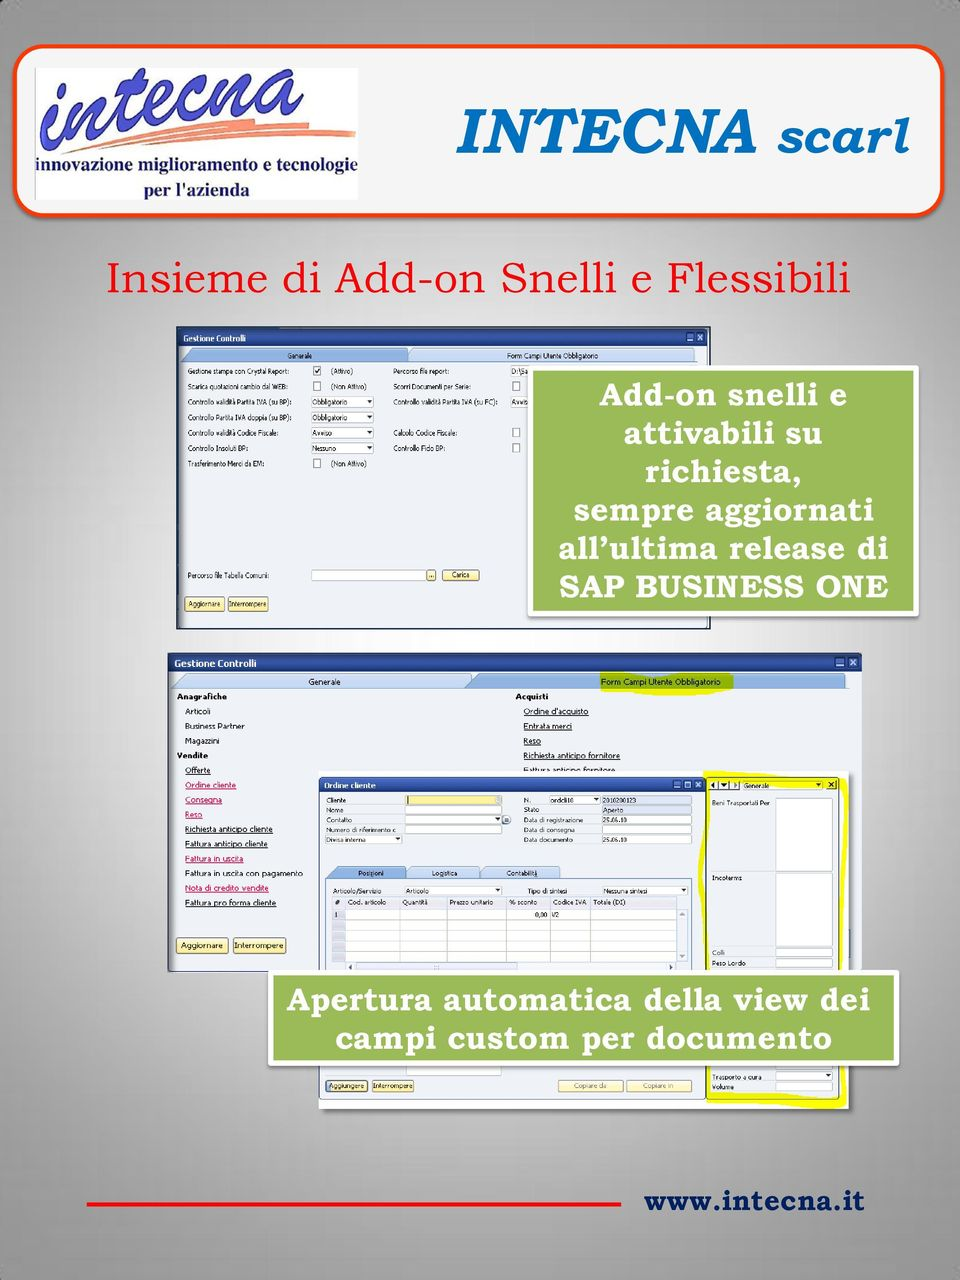 aggiornati all ultima rlas di SAP BUSINESS